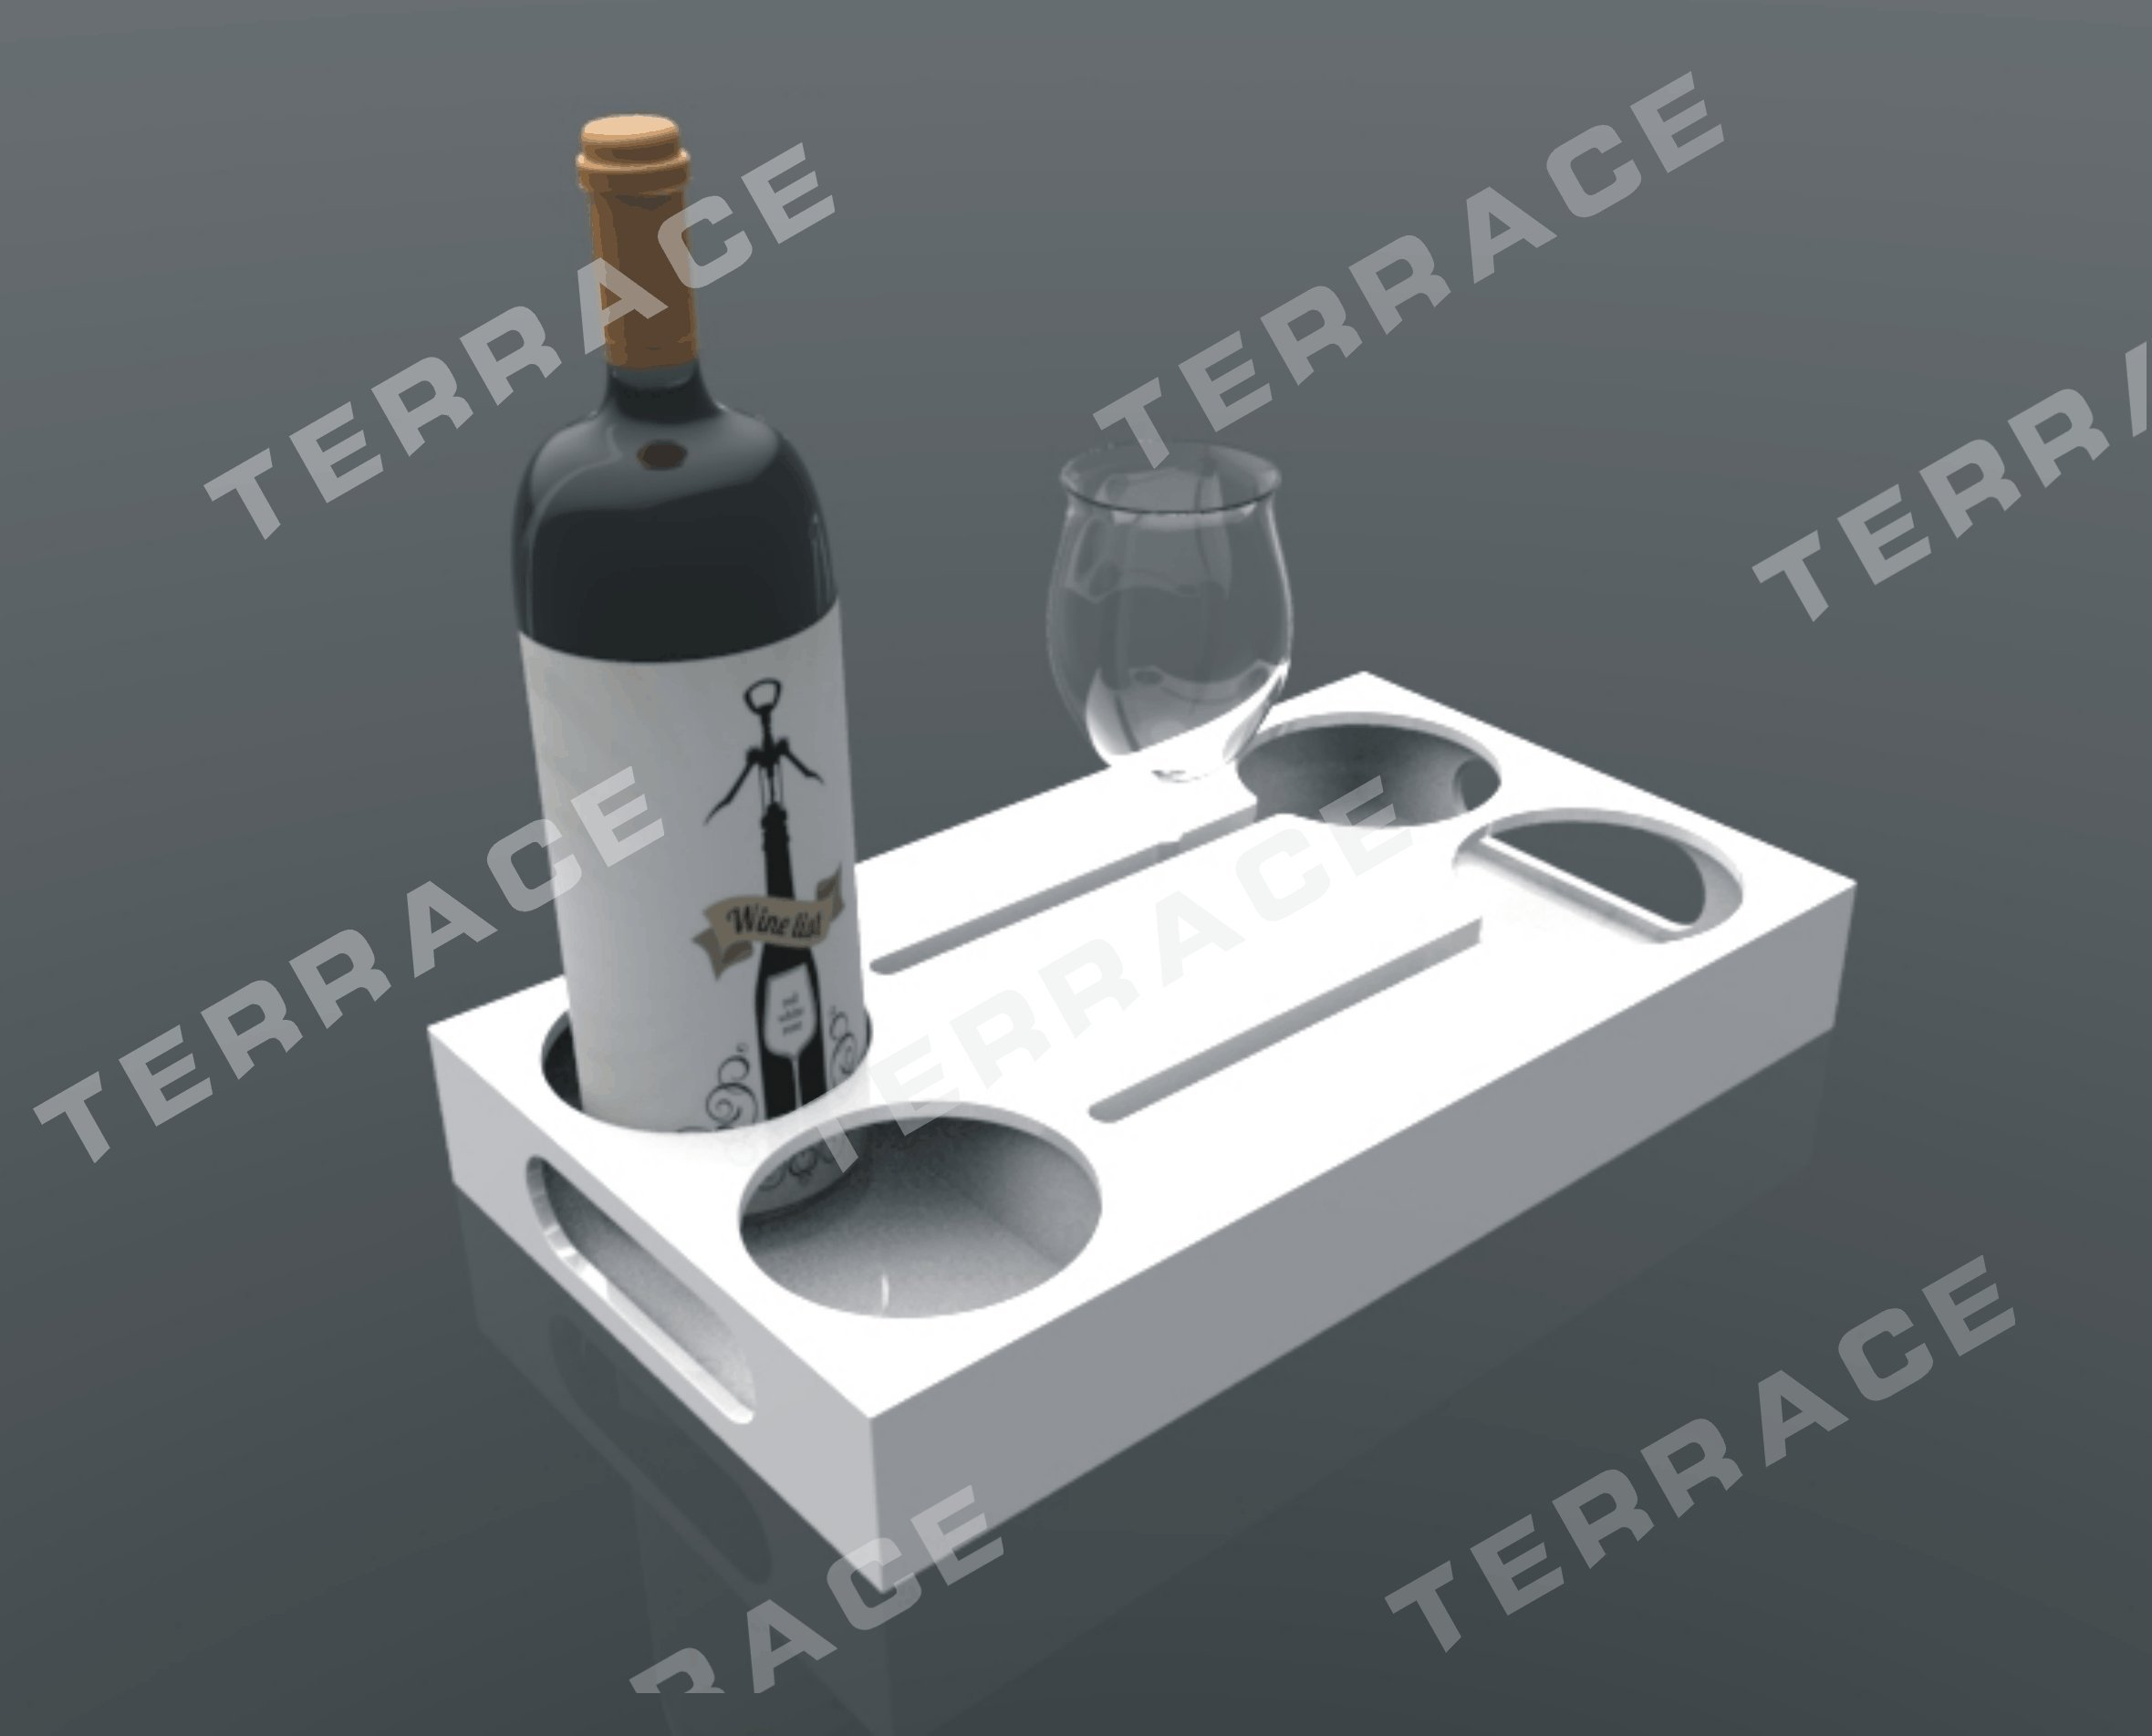 Tabletop slot plexiglass wine bottle & glass holder rack